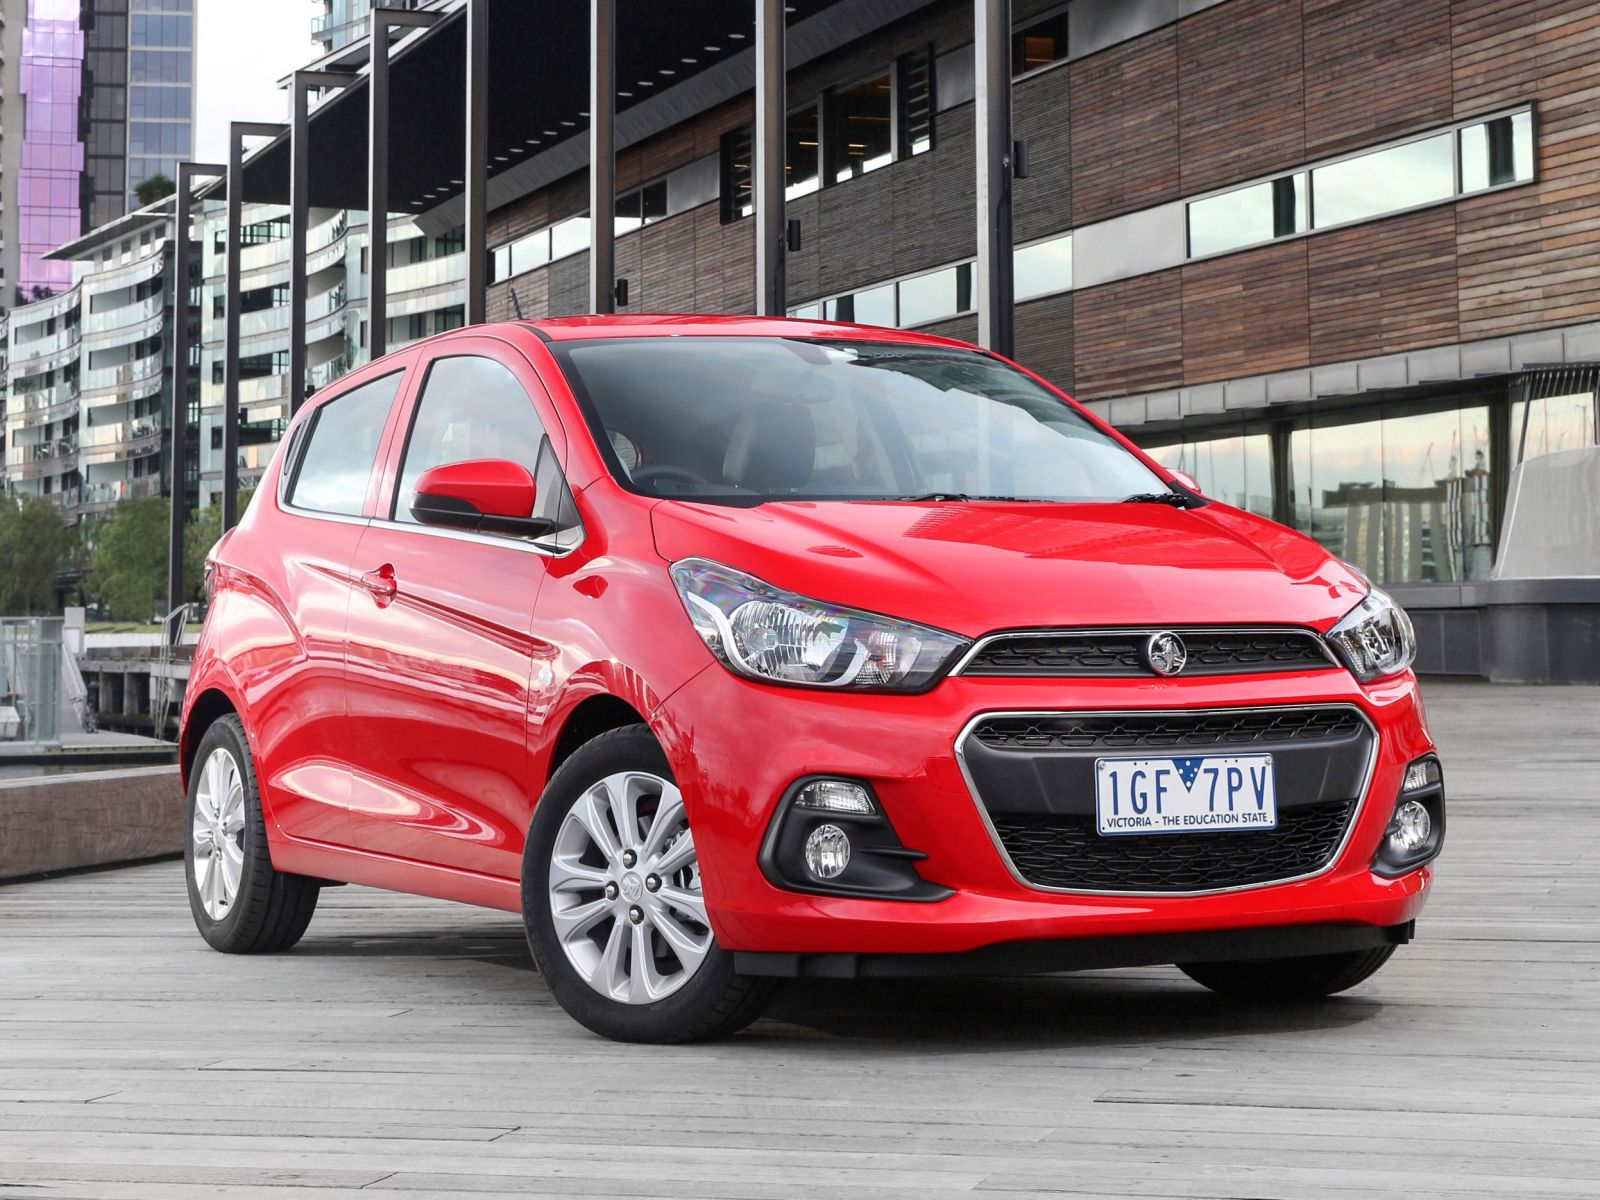 2016 Holden Spark - Prices, Specifications and Features